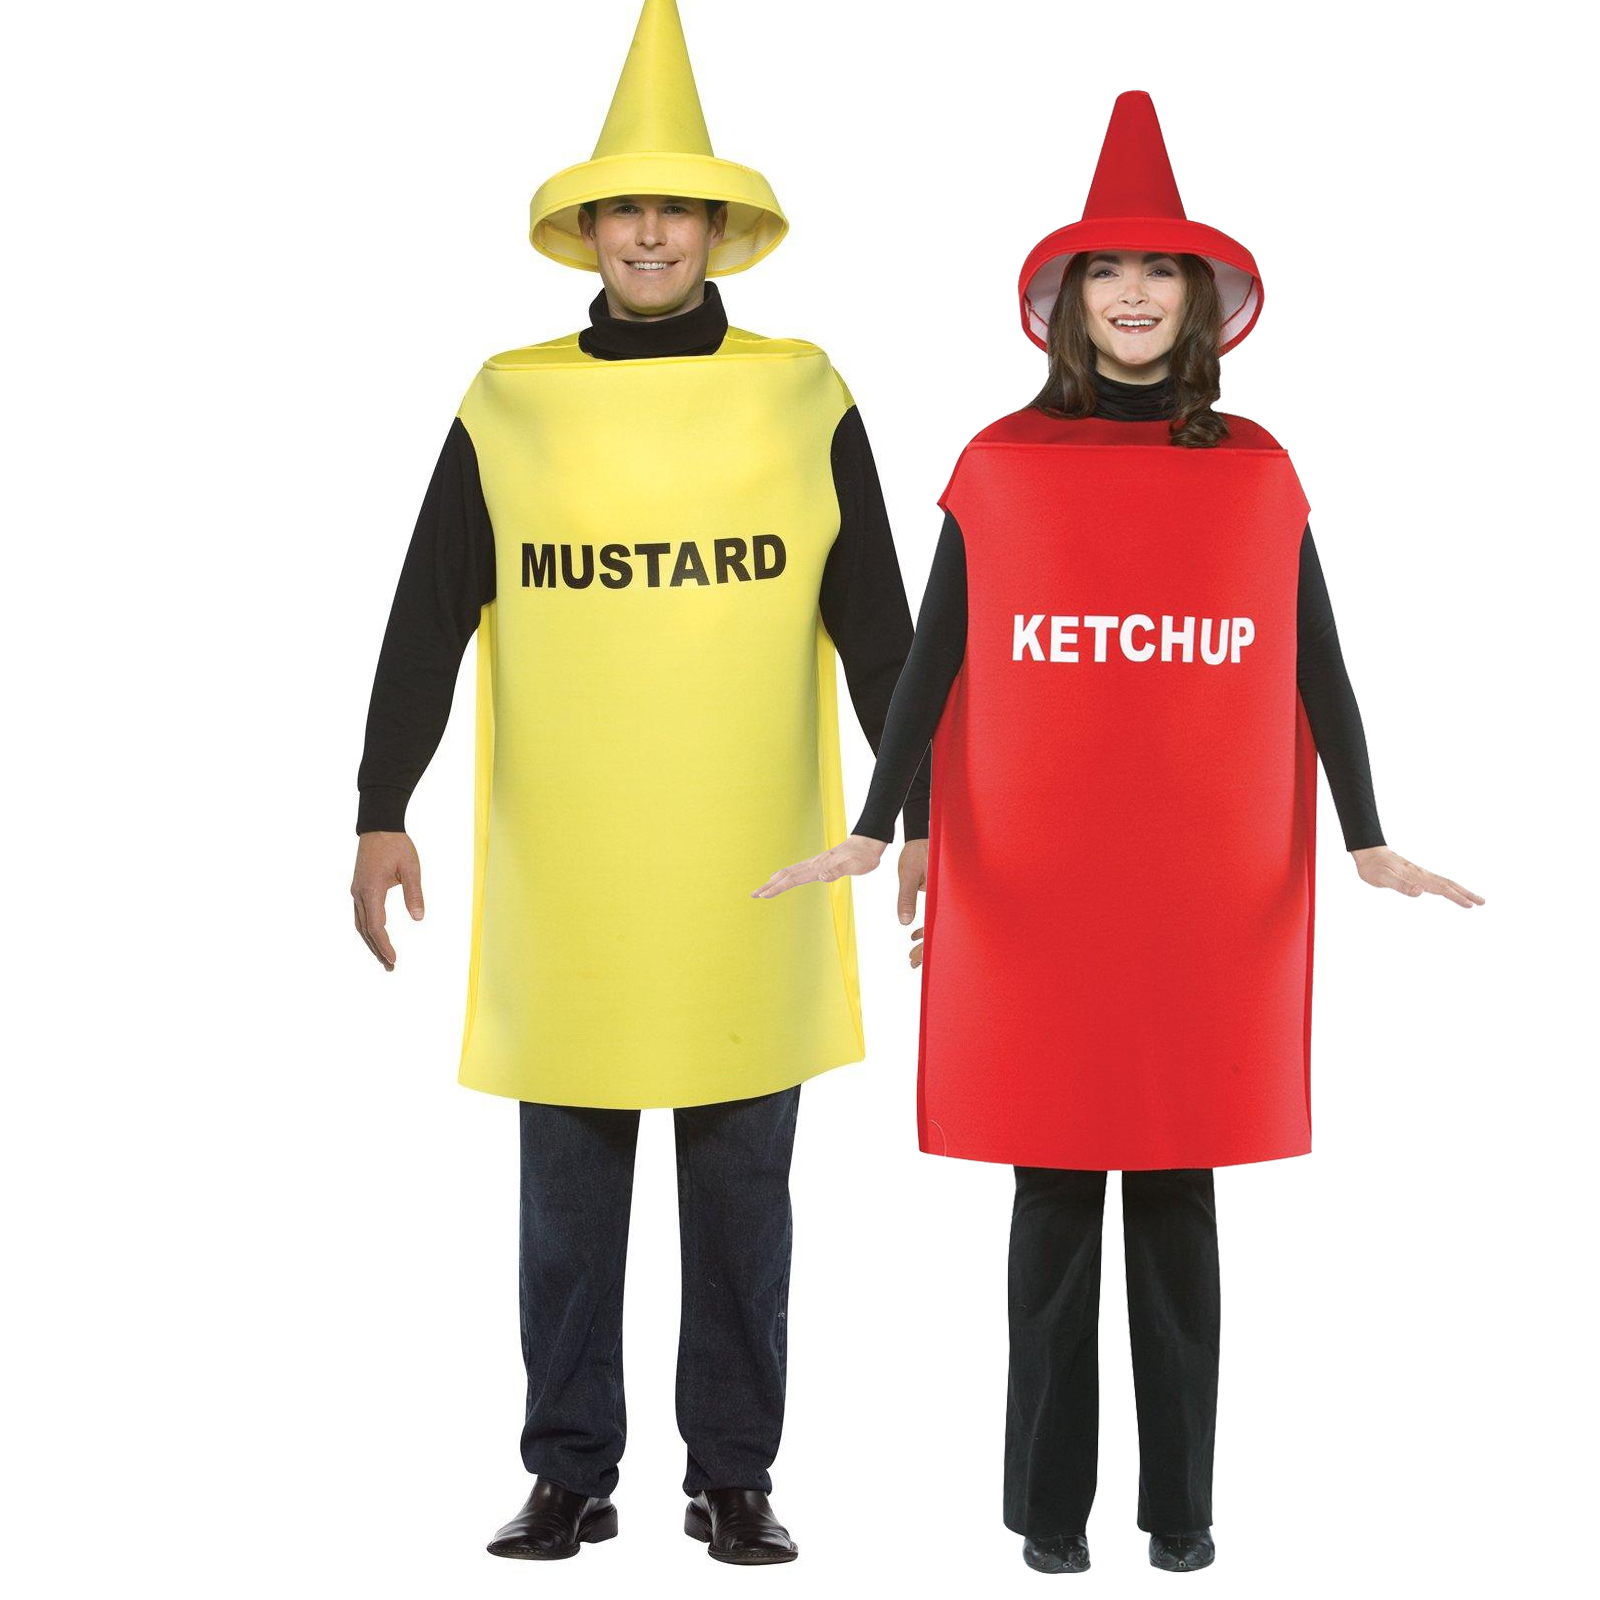 Ketchup And Mustard Halloween Costumes For Kids / Image Source  sc 1 st  TimyKids & Ketchup And Mustard Halloween Costumes For Kids | TimyKids